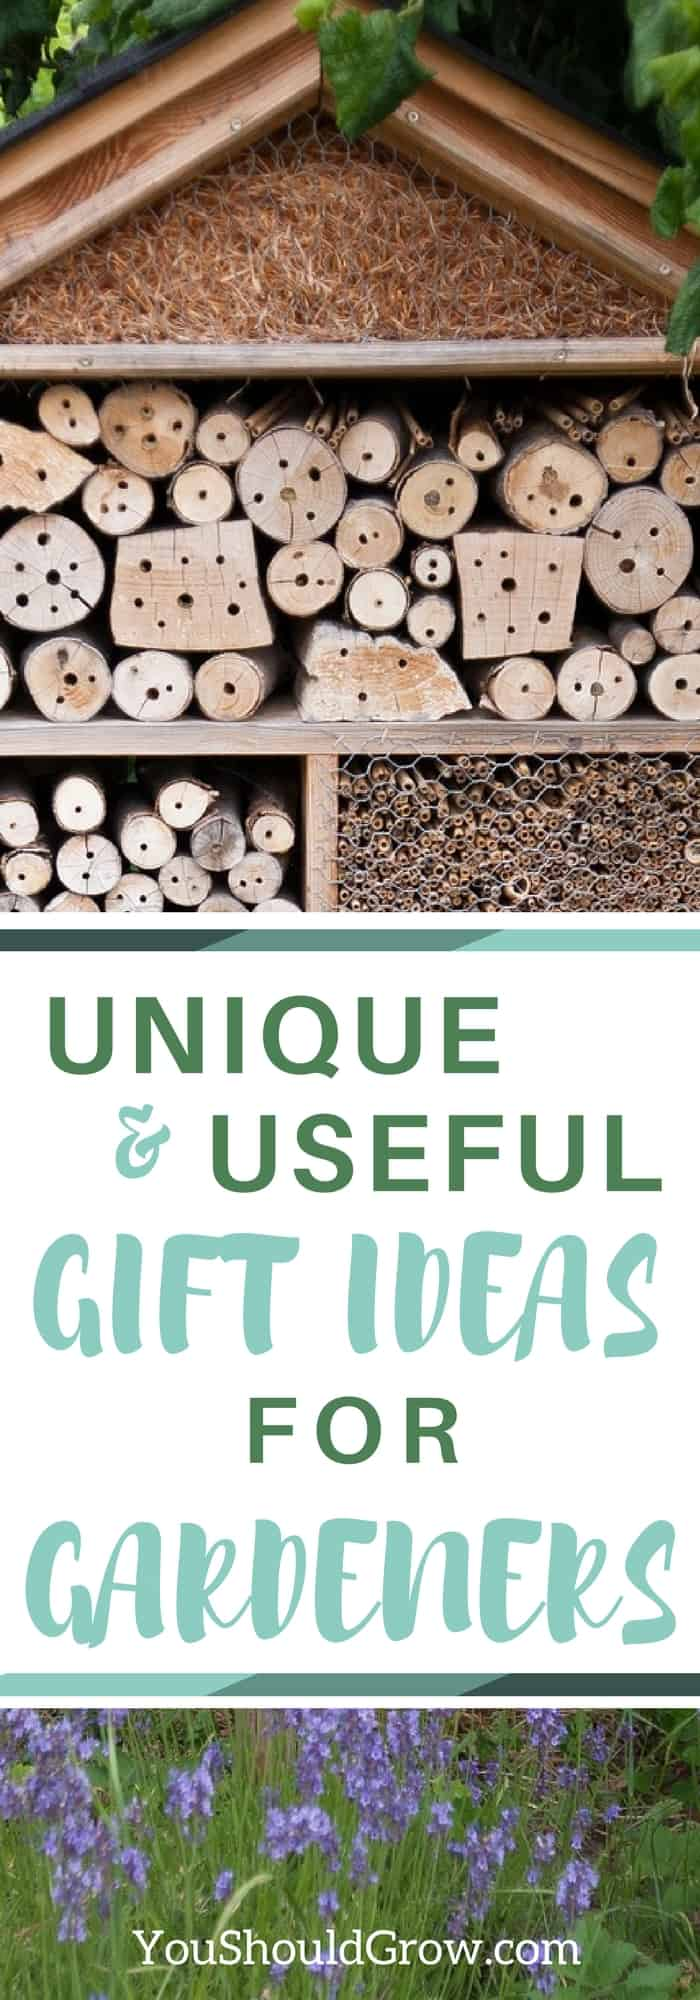 Gift Guide For Gardeners: 16 Unique and Useful Ideas - You Should Grow